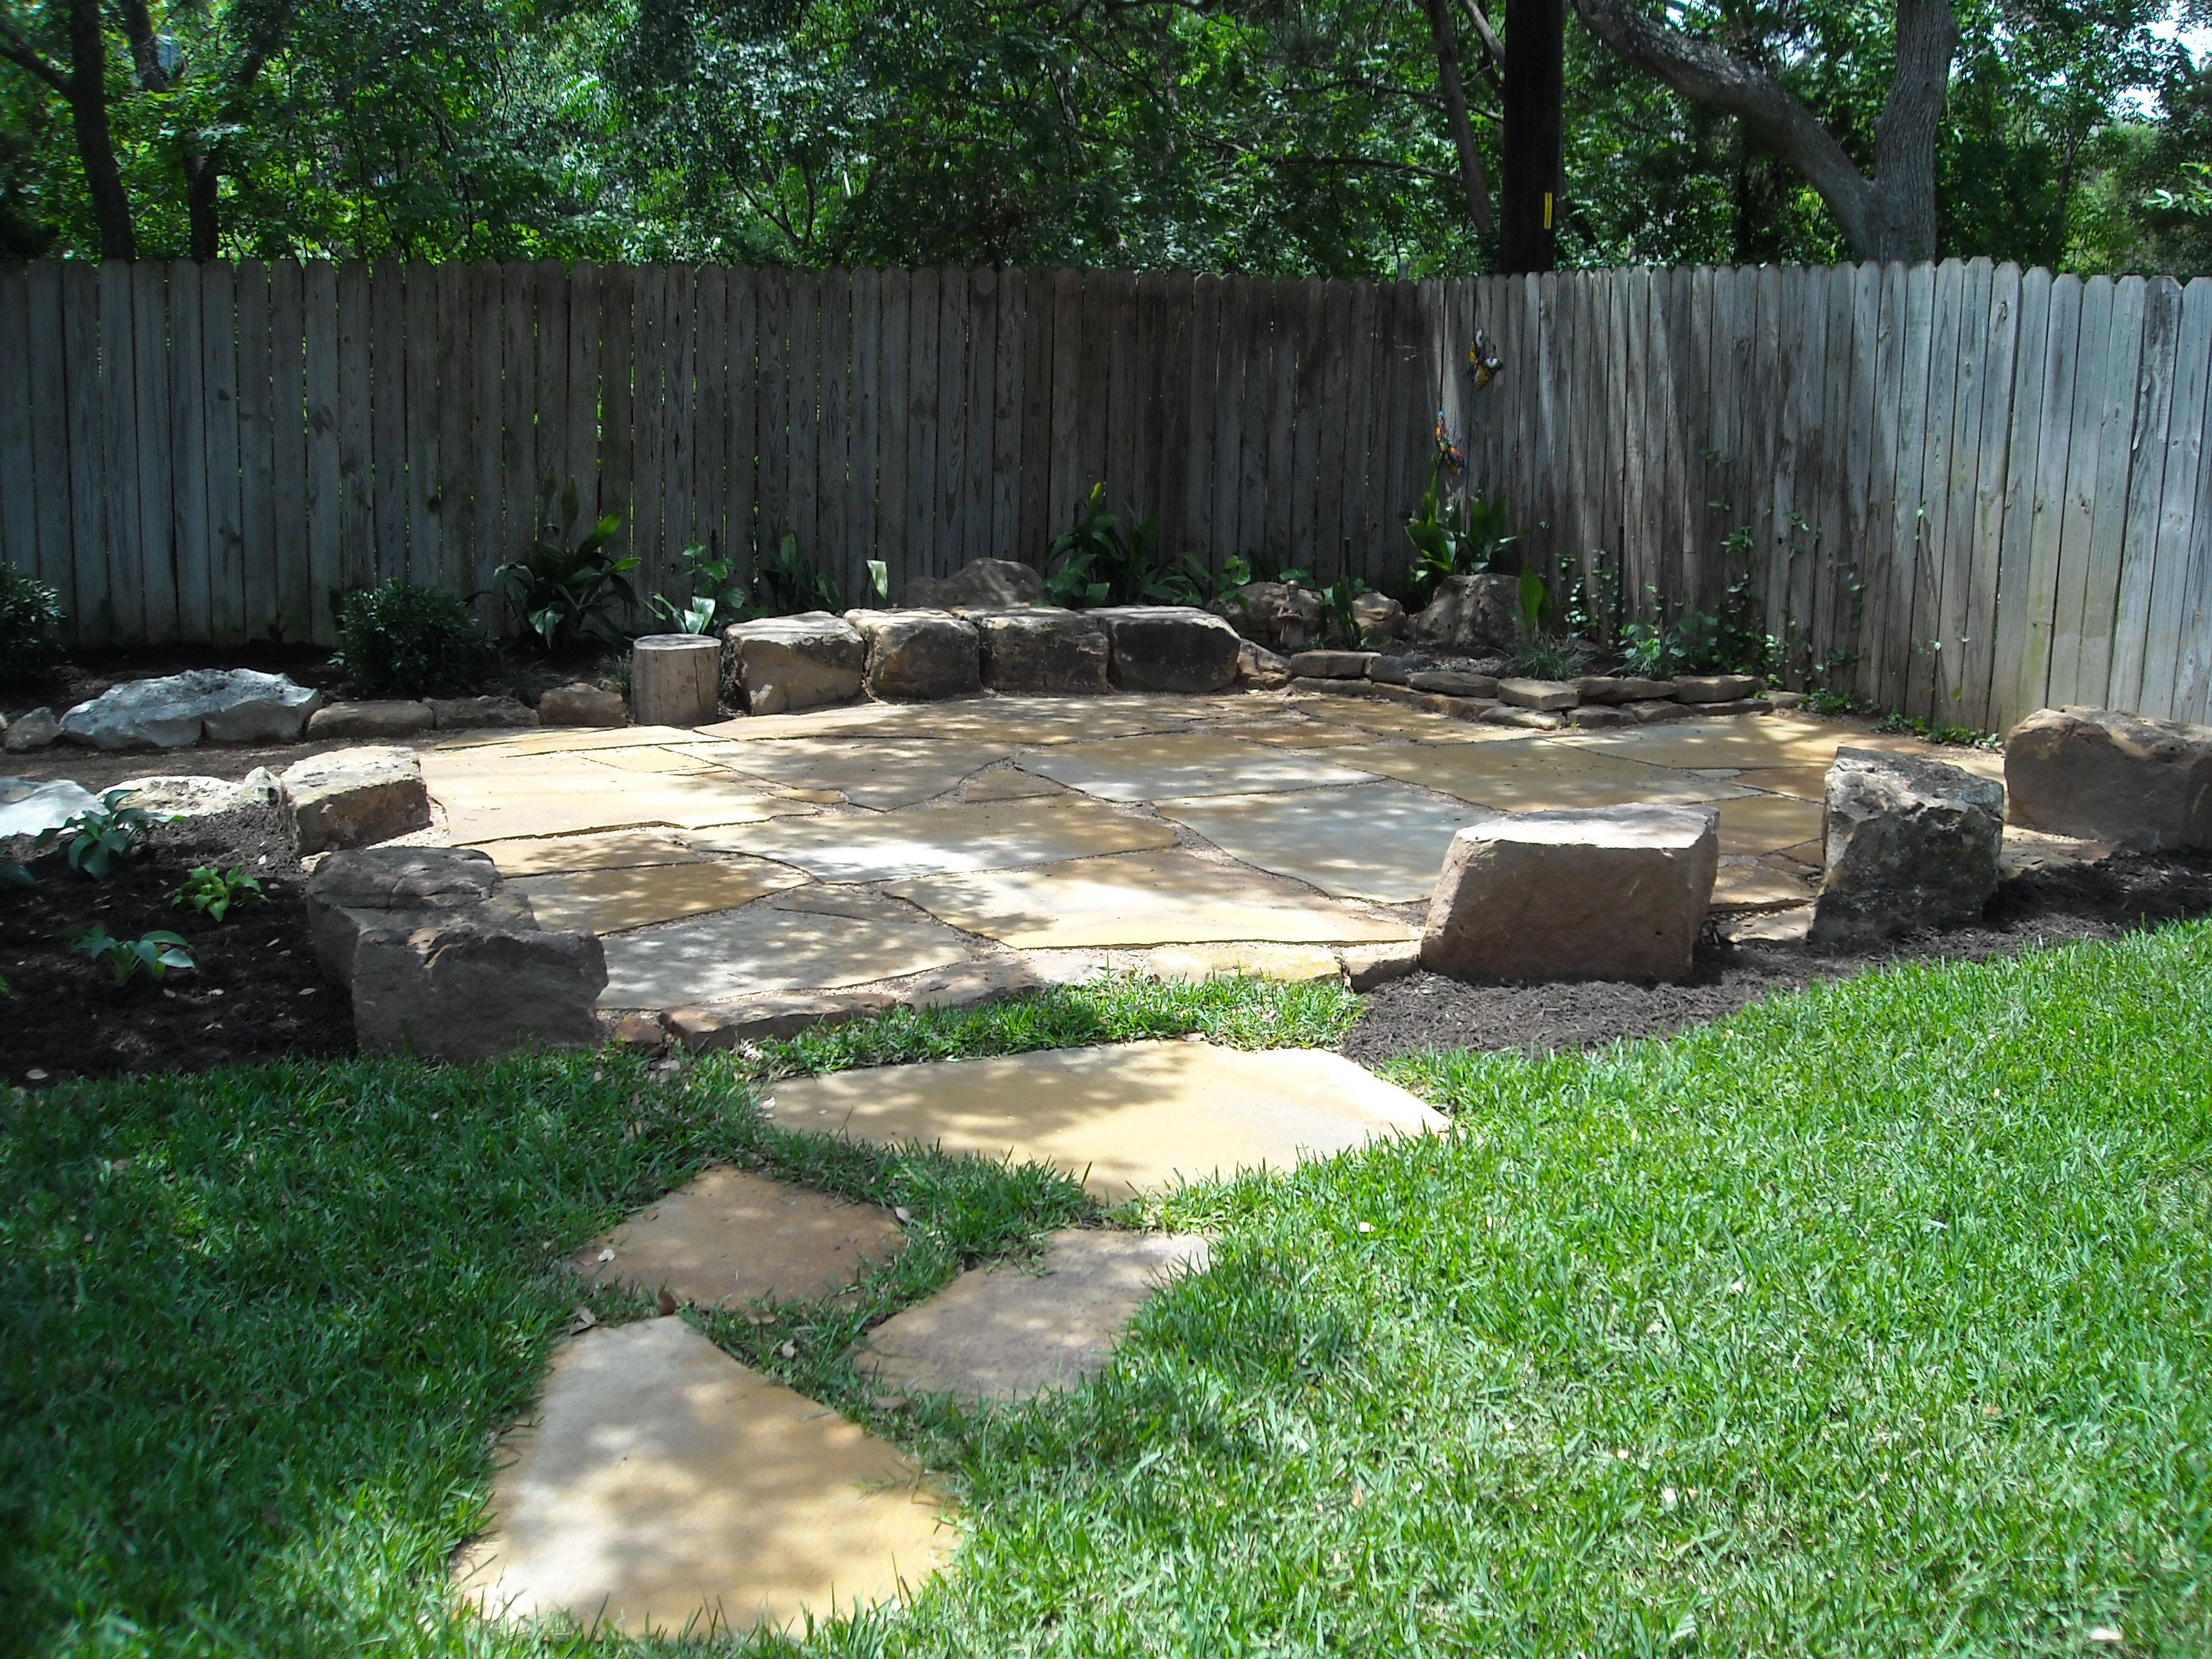 Flagstone patio set in decomposed granite with sitting ... on Decomposed Granite Backyard Ideas id=15659